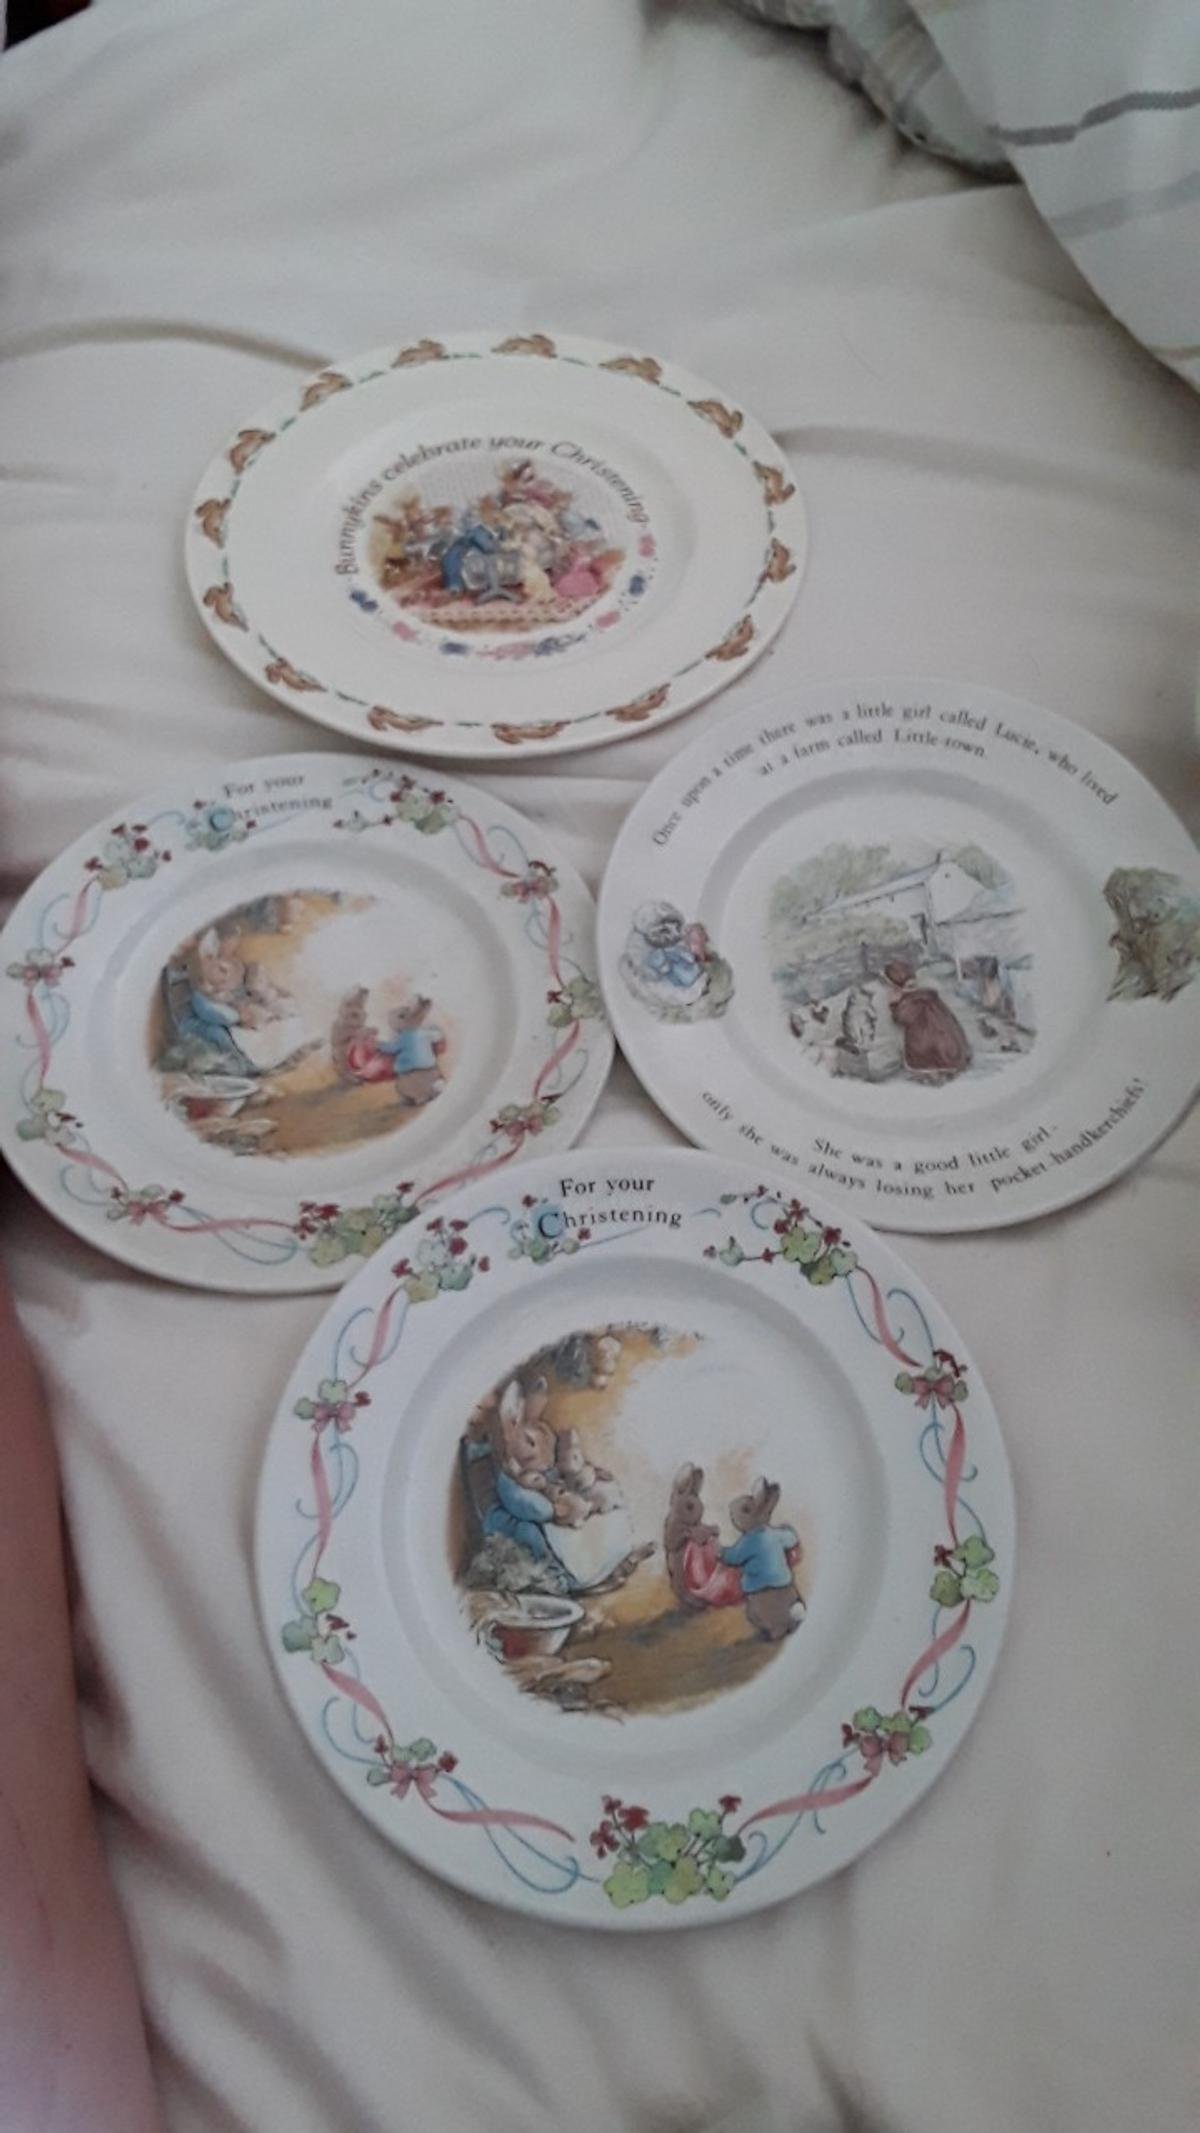 PETER RABBIT. ALL IN EXCELLENT CONDITION £5.00 each or all for £15.00